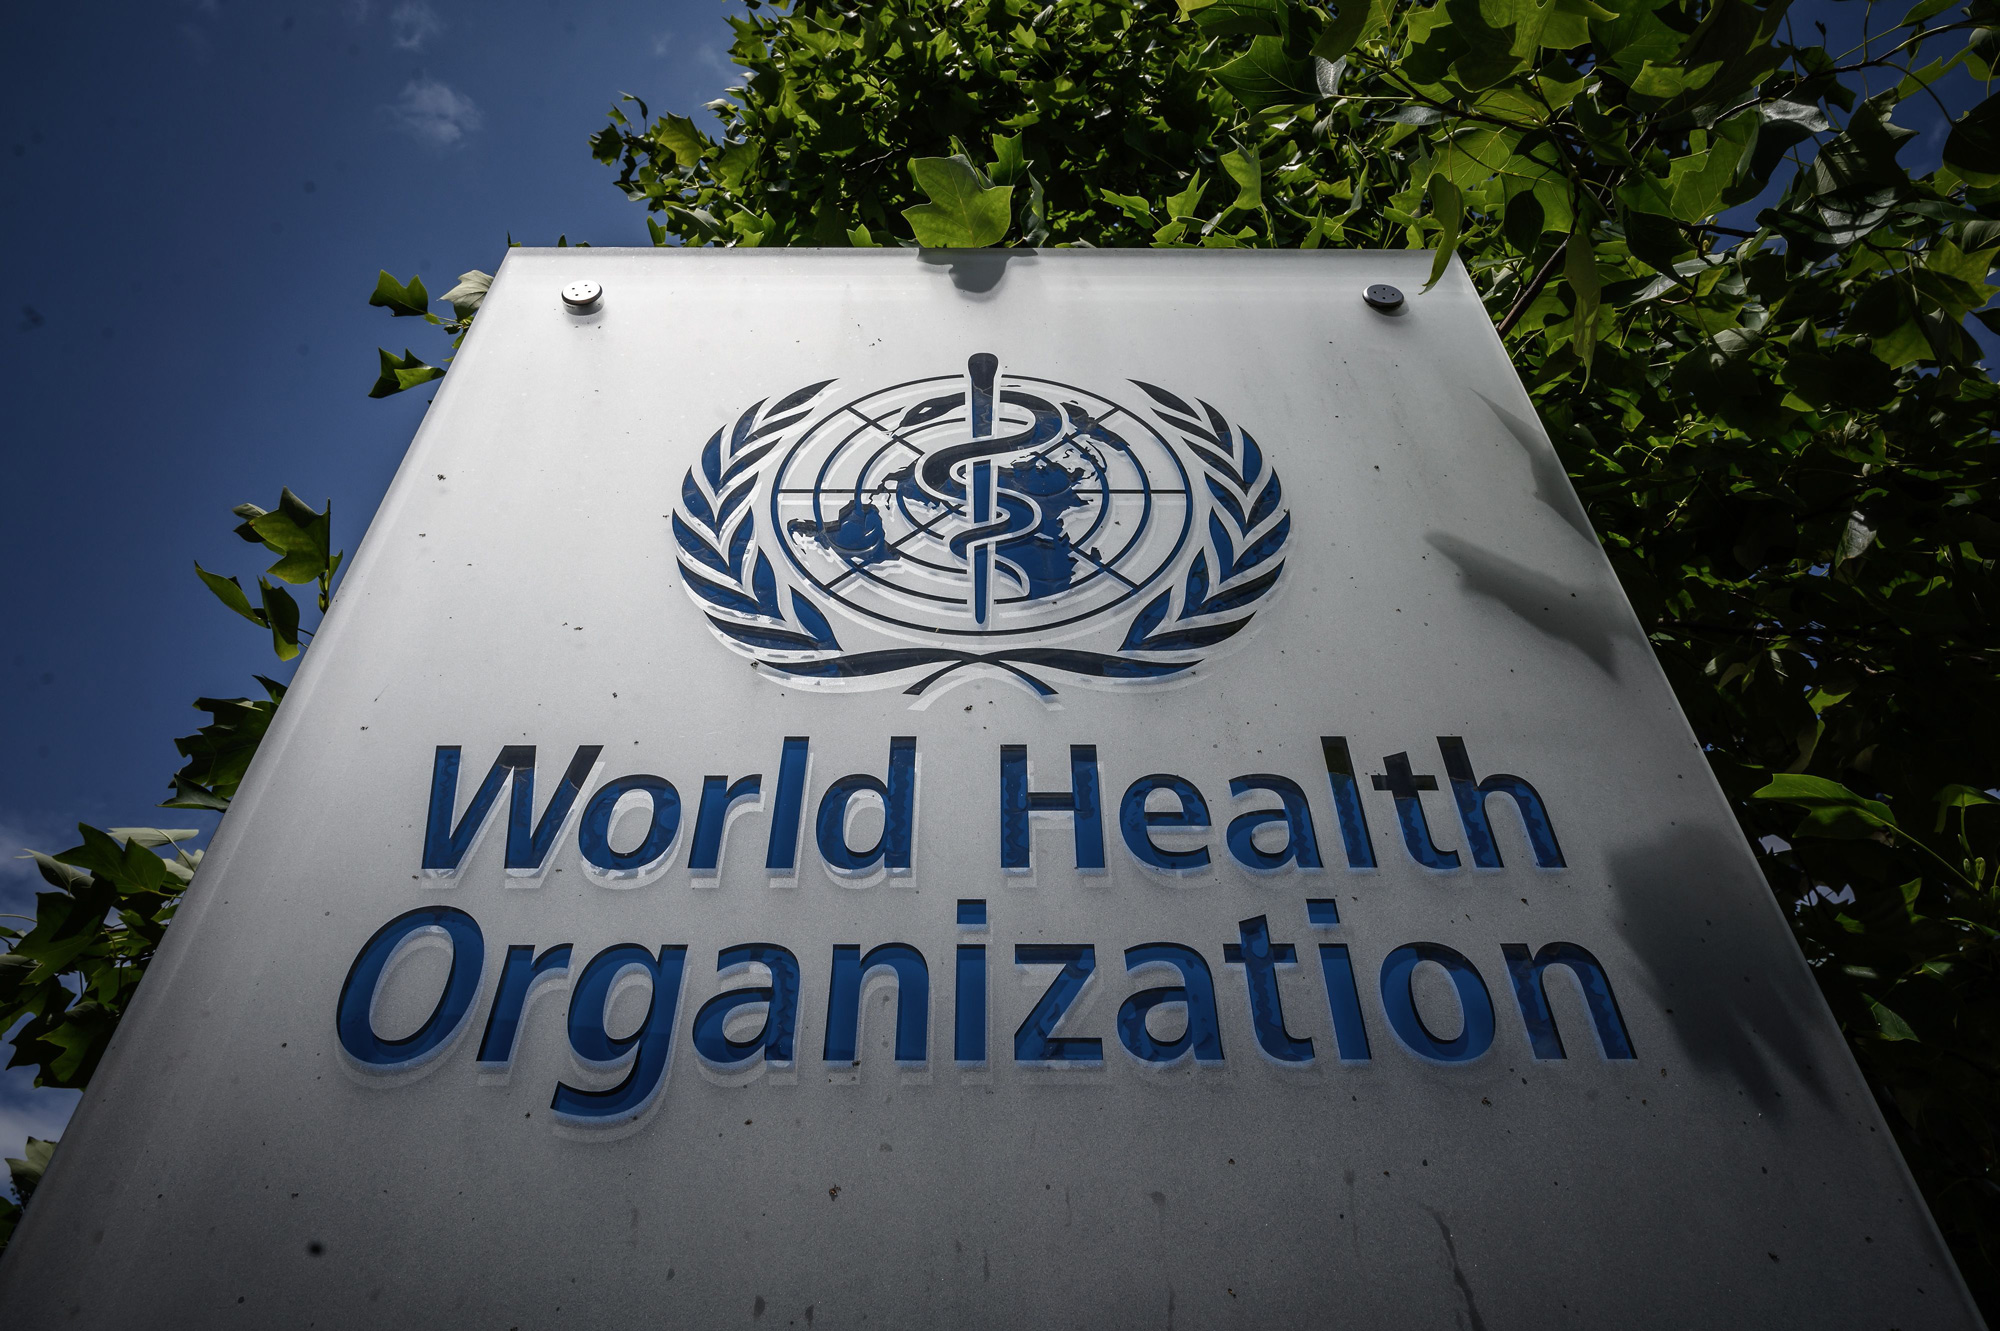 The World Health Organization's sign is shown at its headquarters in Geneva, Switzerland, on July 3.